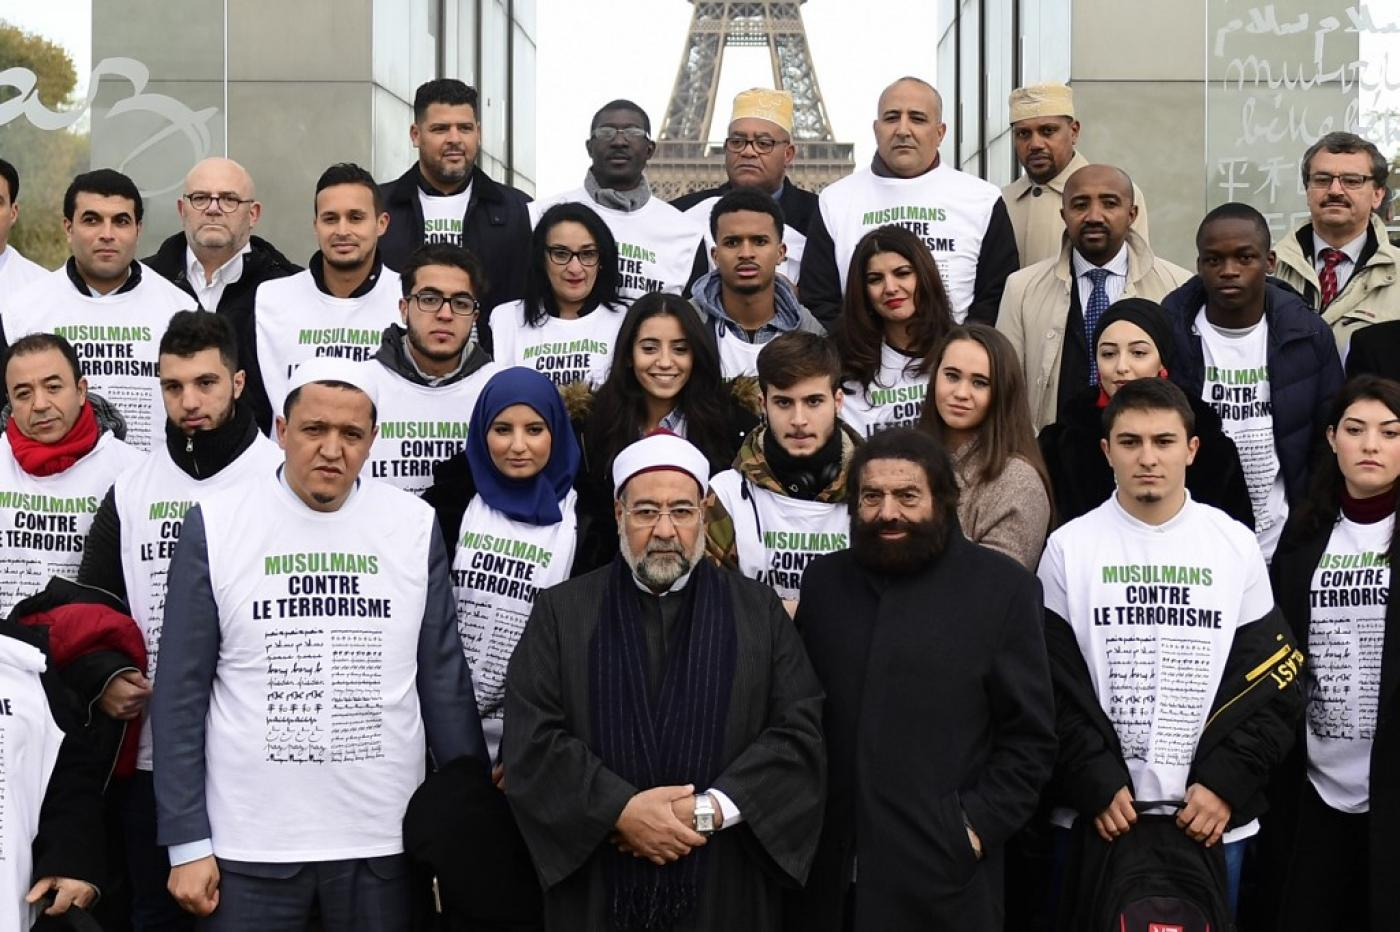 Muslims Against Terrorism campaign